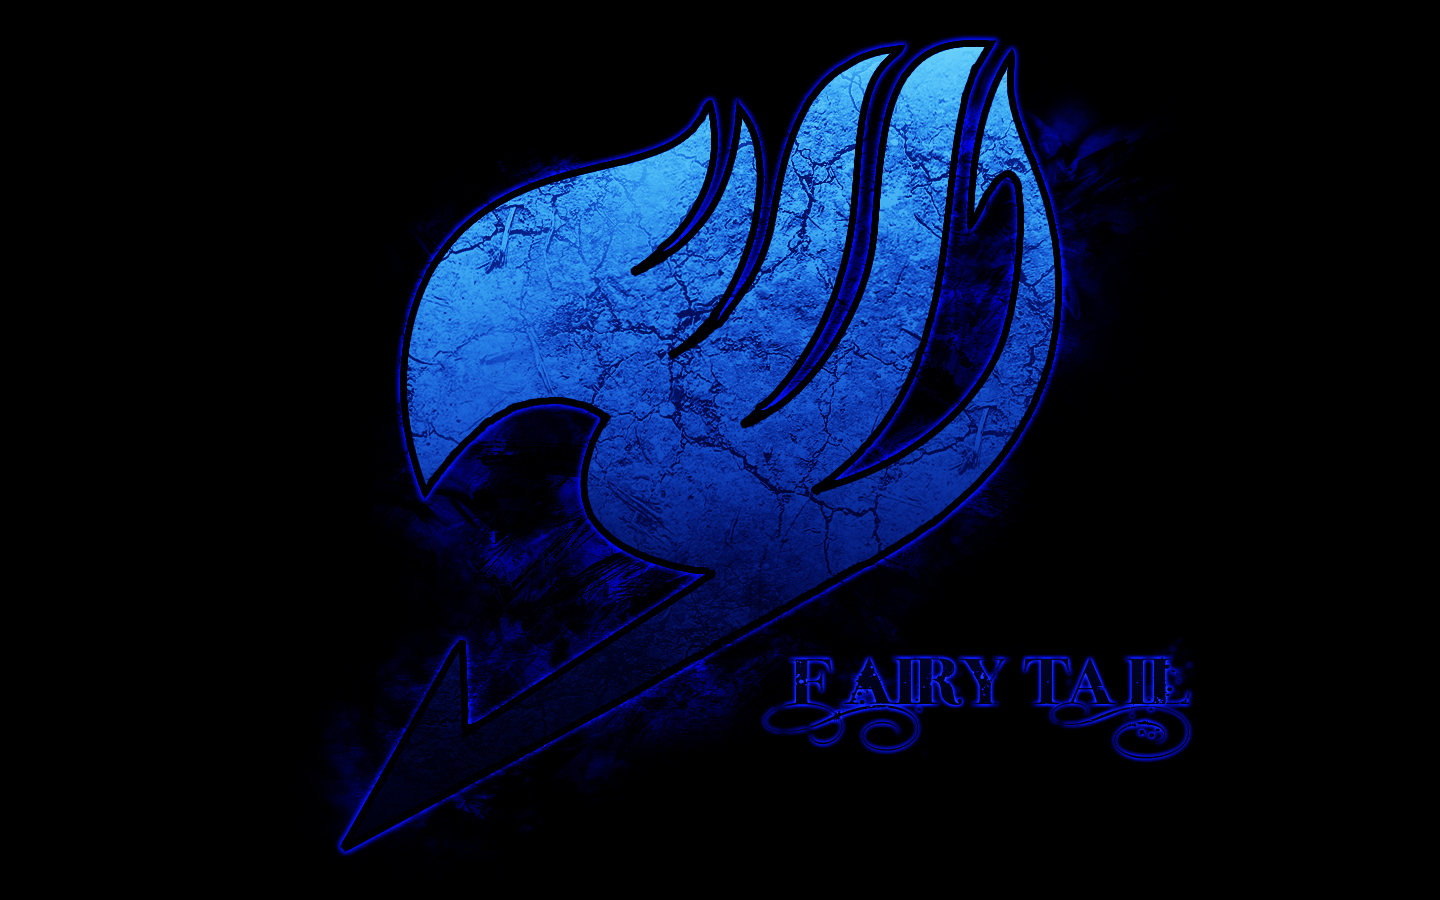 Fairy Tail images Bl